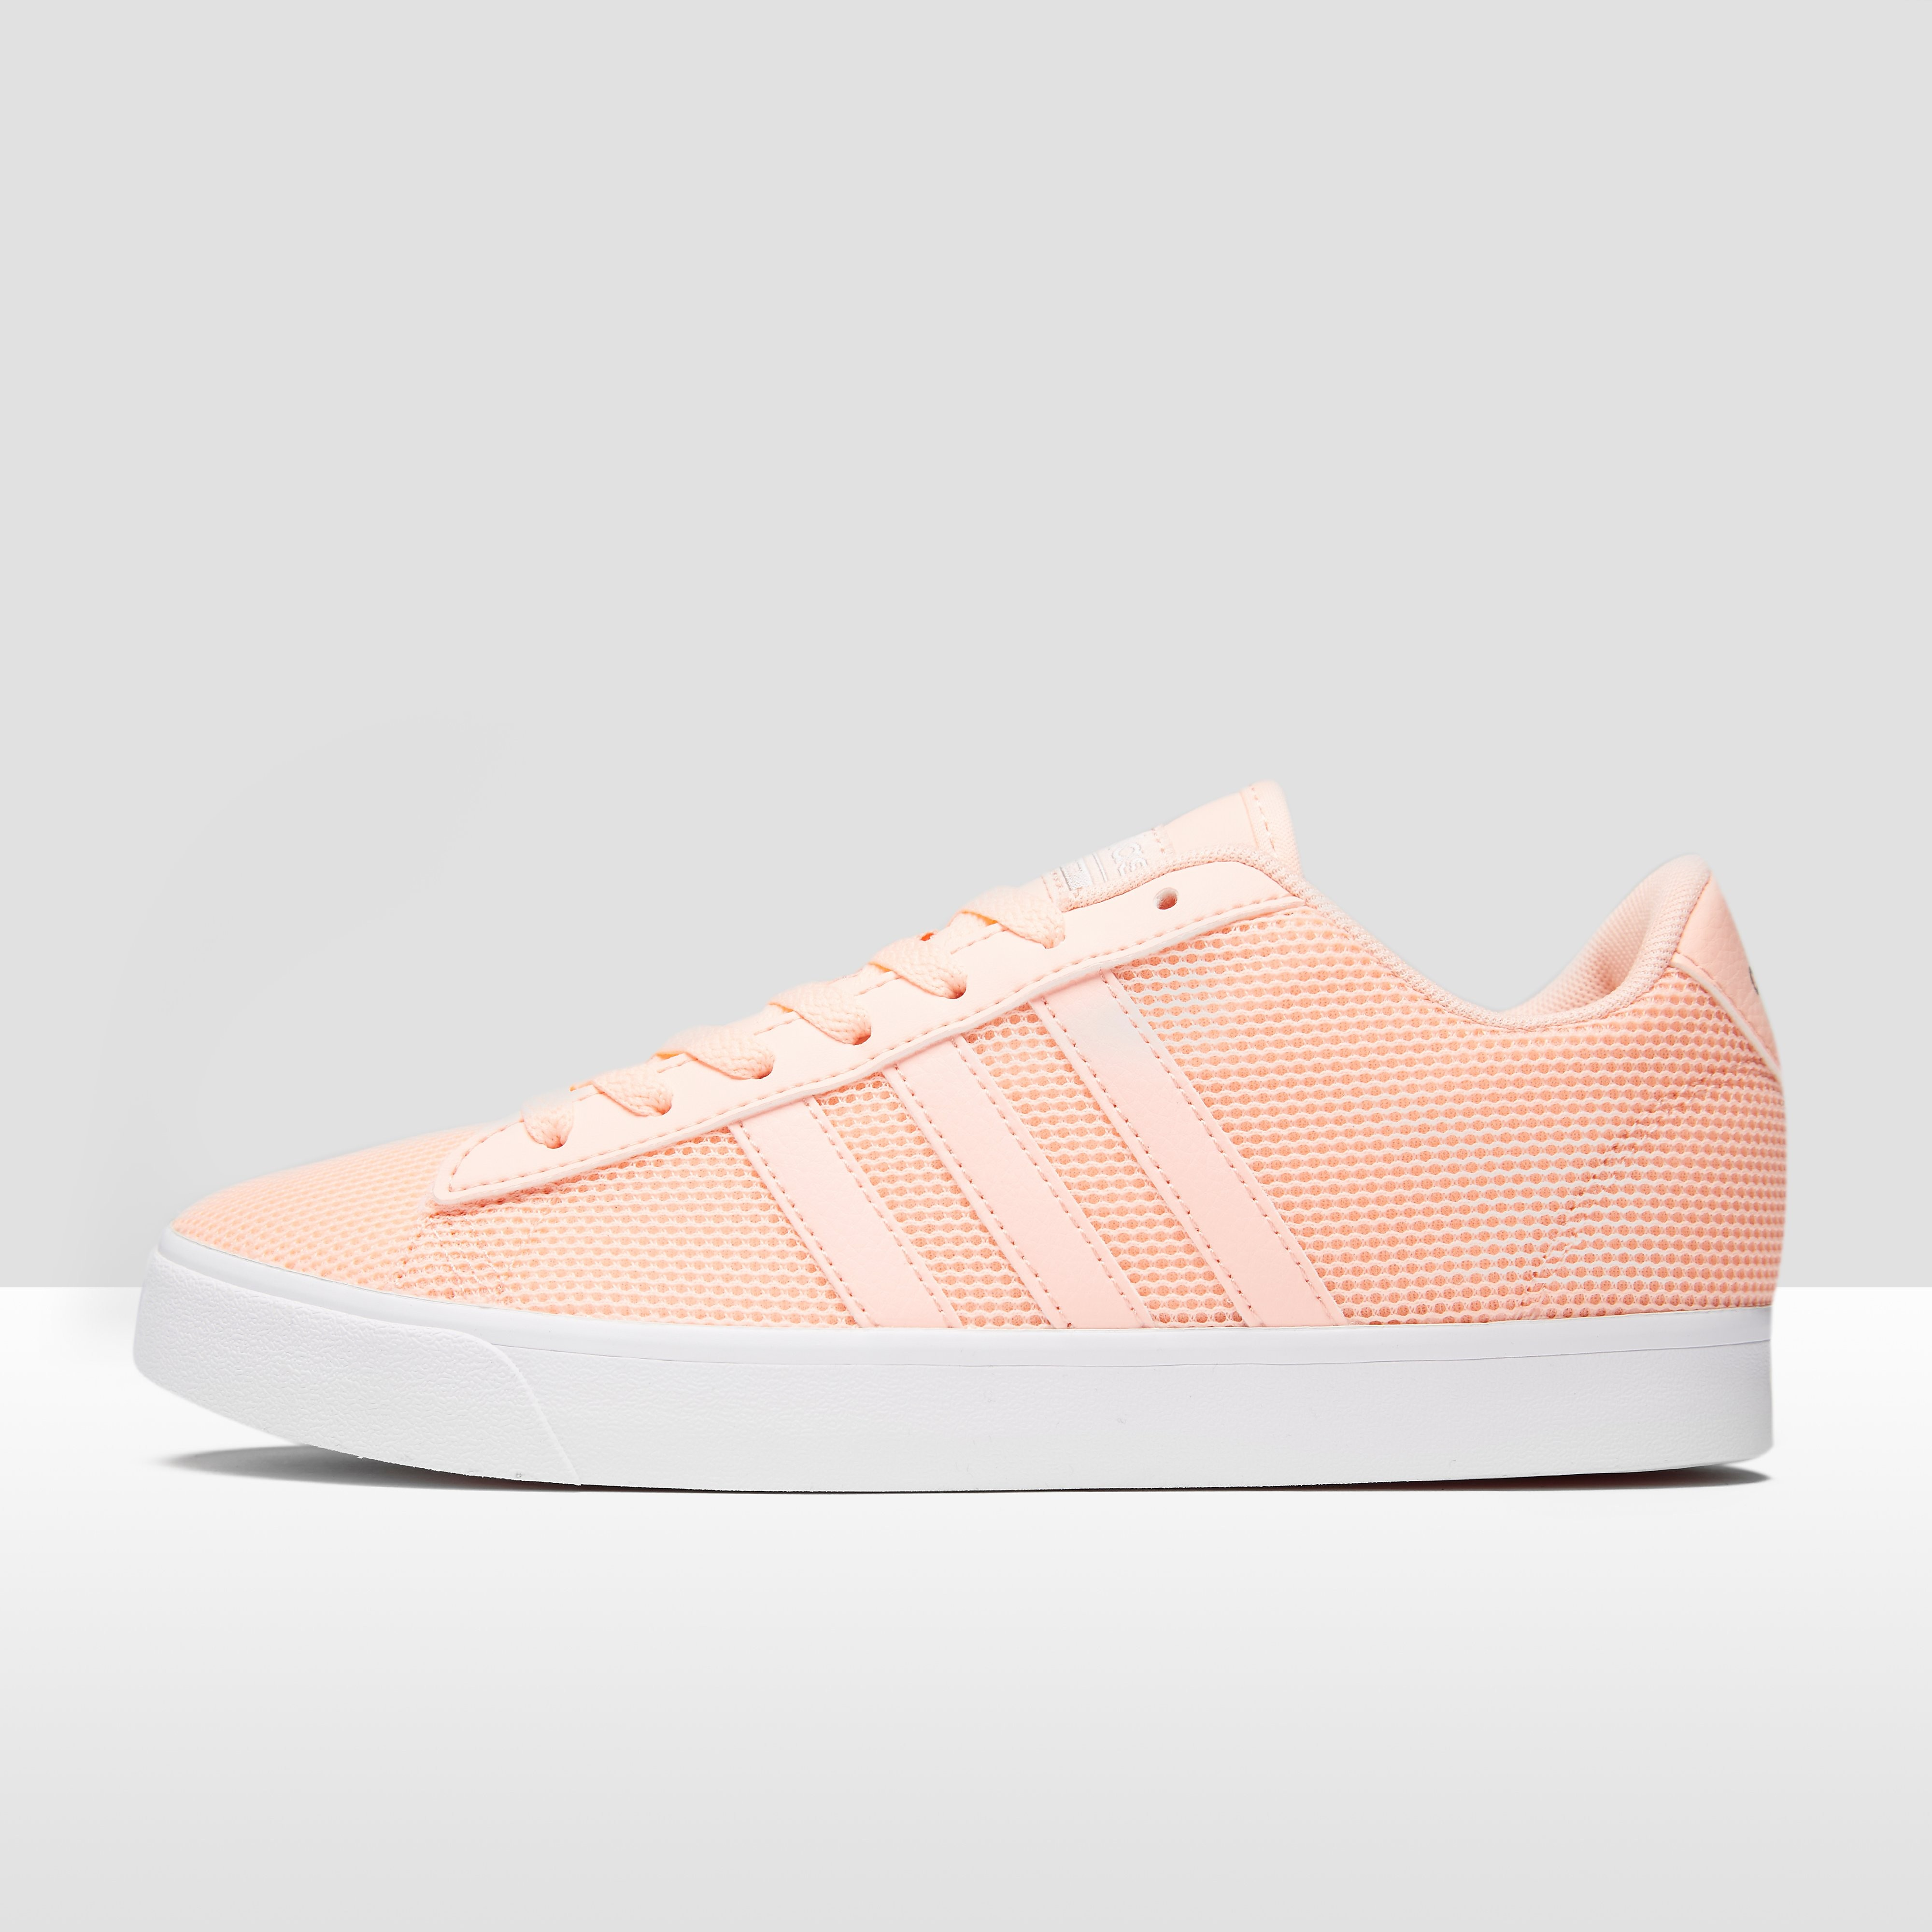 adidas Cloudfoam Daily QT sneakers